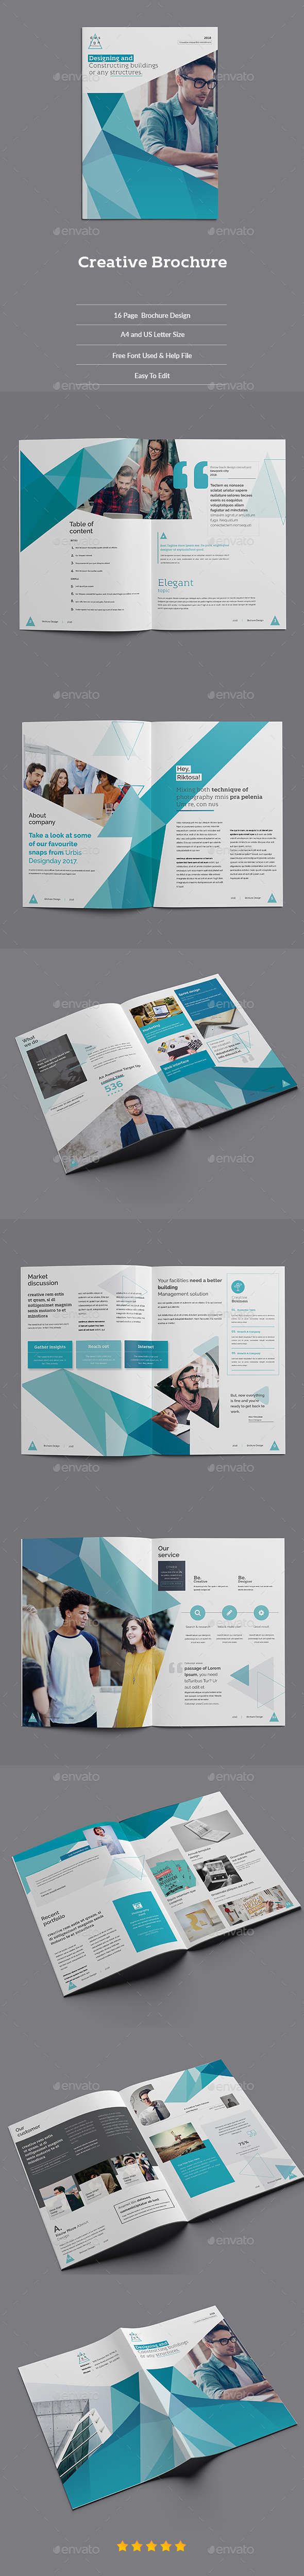 Creative Brochure - Corporate Brochures